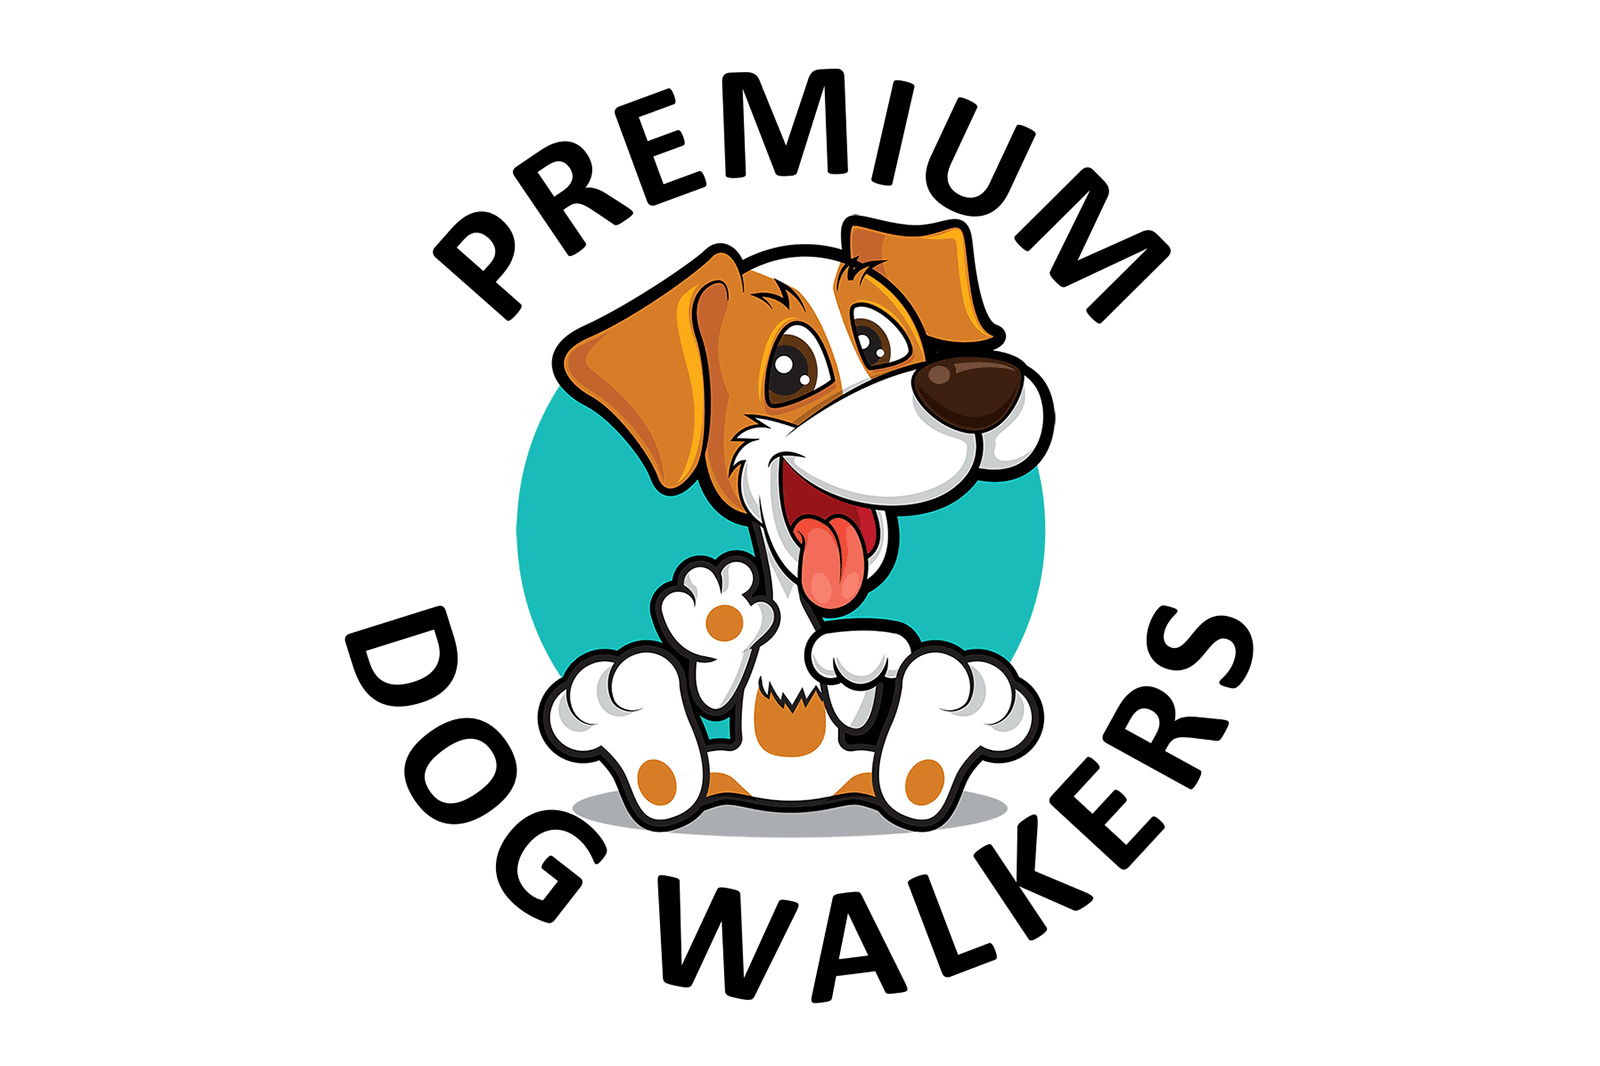 Premium Dog Walkers First Blog Article